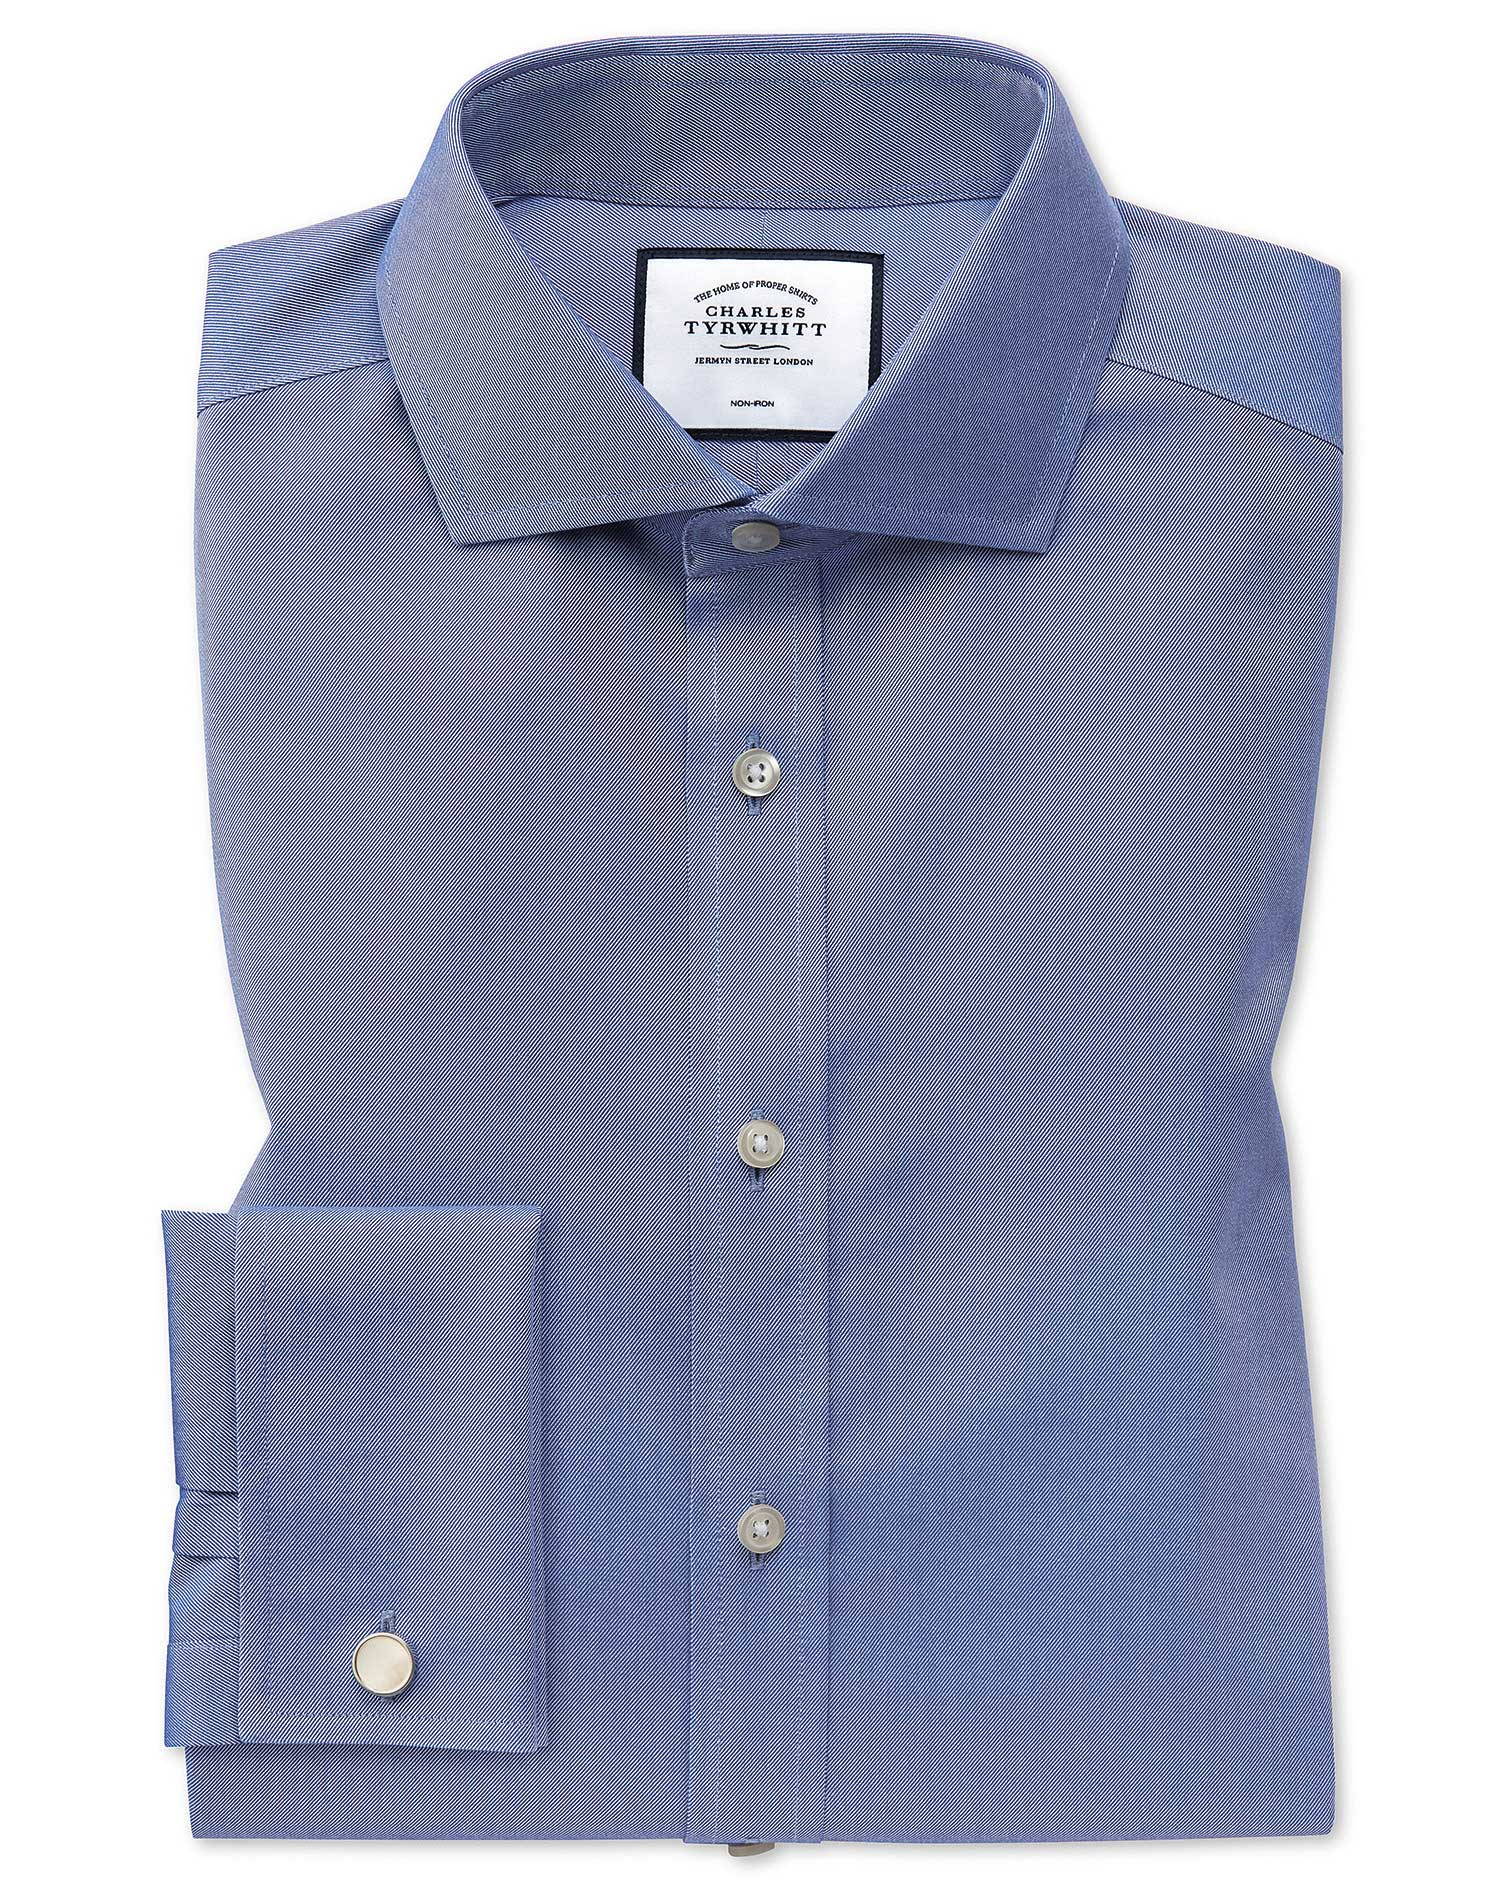 Extra Slim Fit Cutaway Non-Iron Twill Mid Blue Cotton Formal Shirt Single Cuff Size 16/32 by Charles